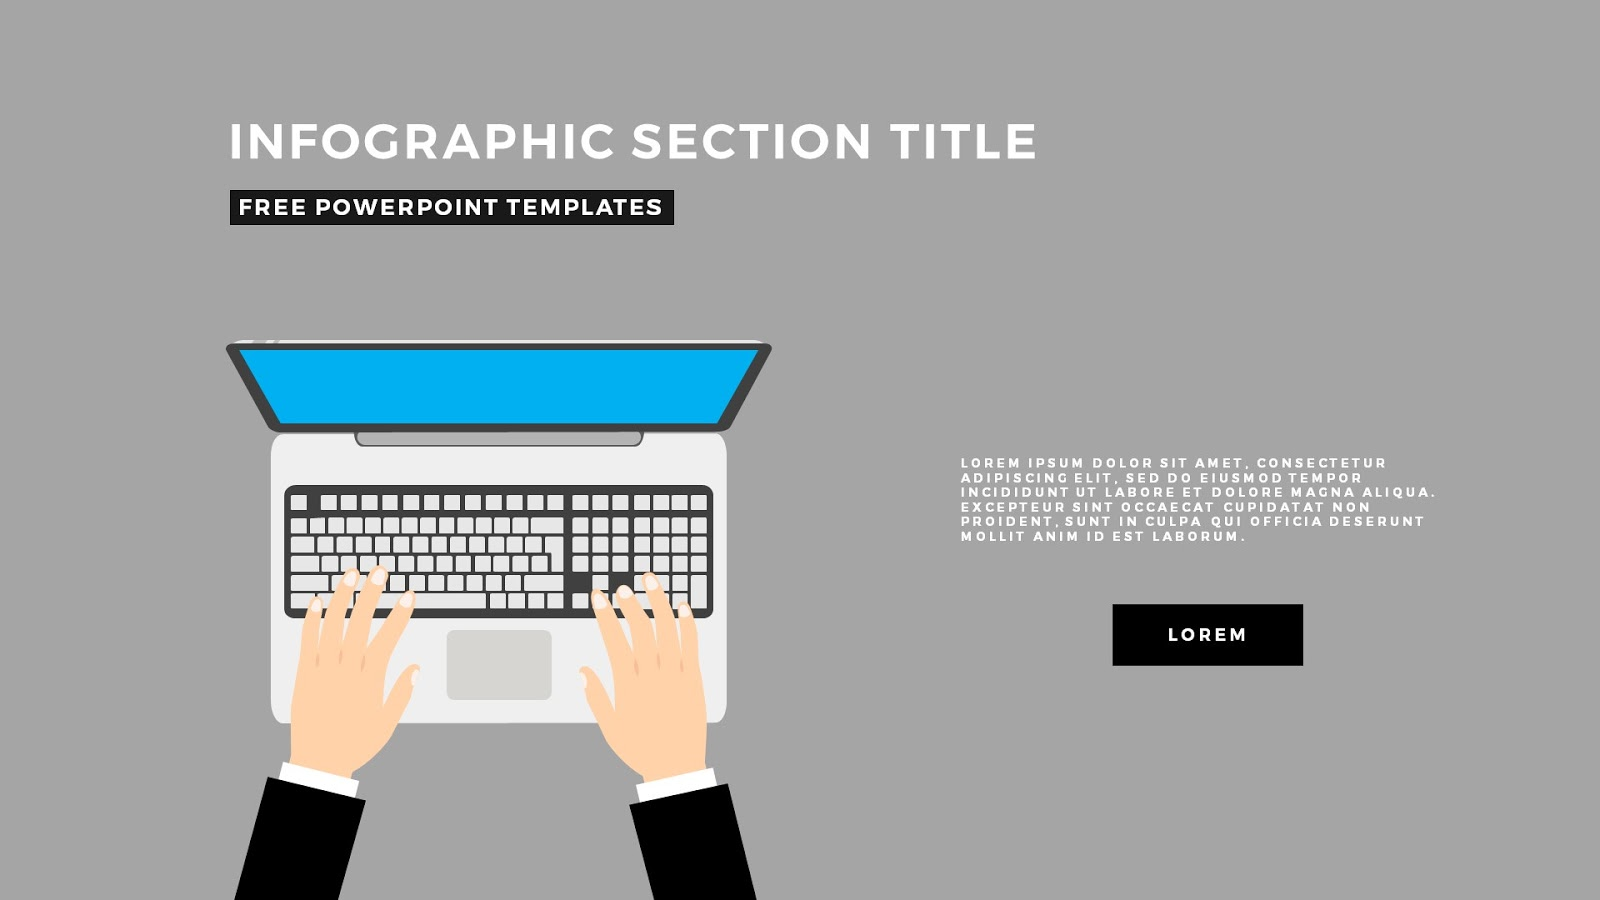 flat design section titles for free powerpoint templates